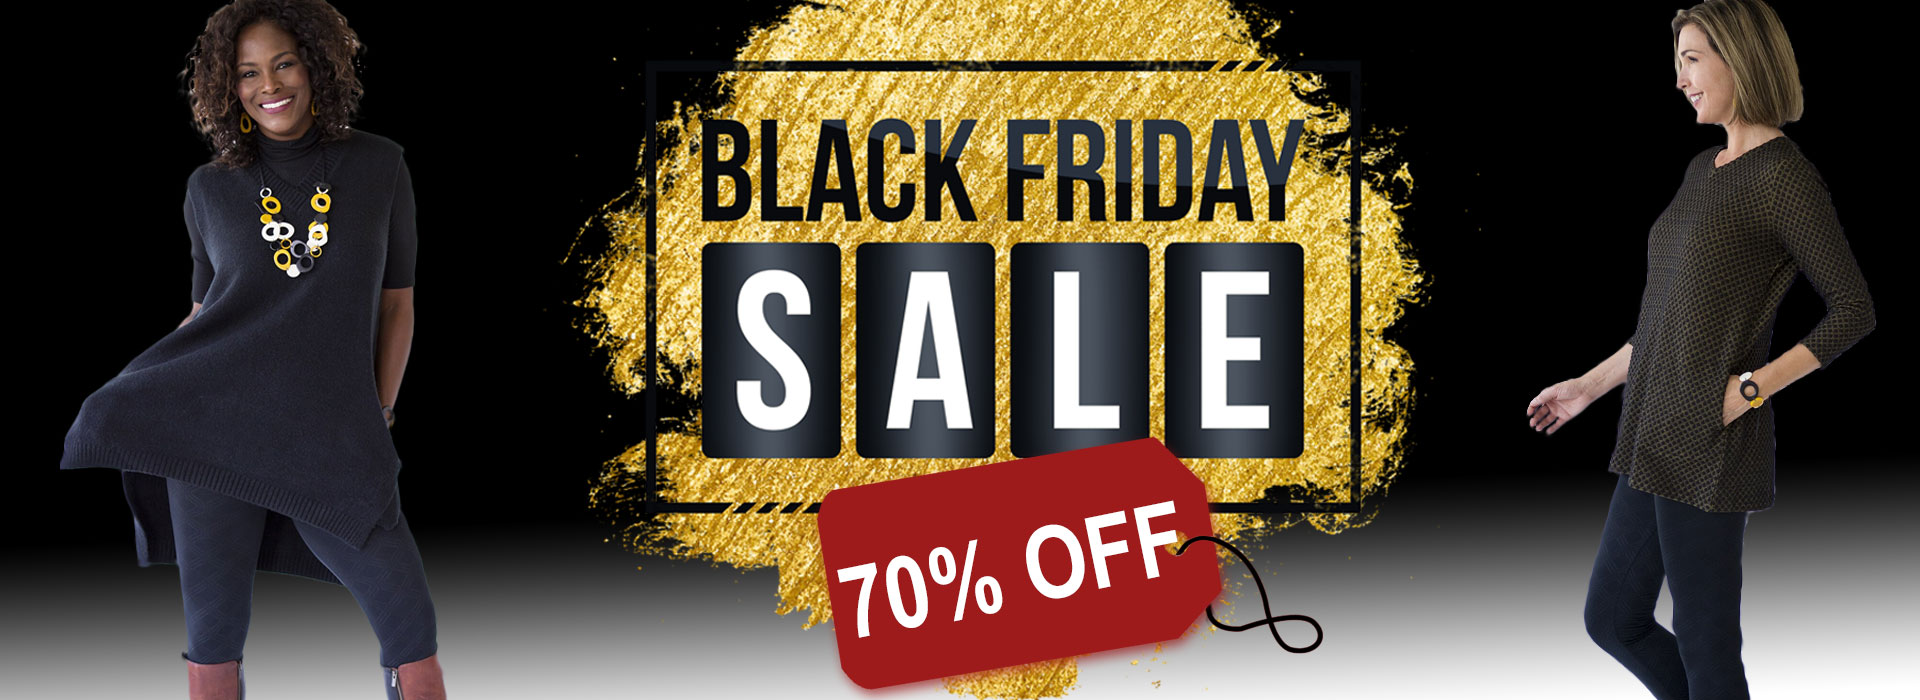 black-friday-sale-main-banner-with-models-all-black.jpg